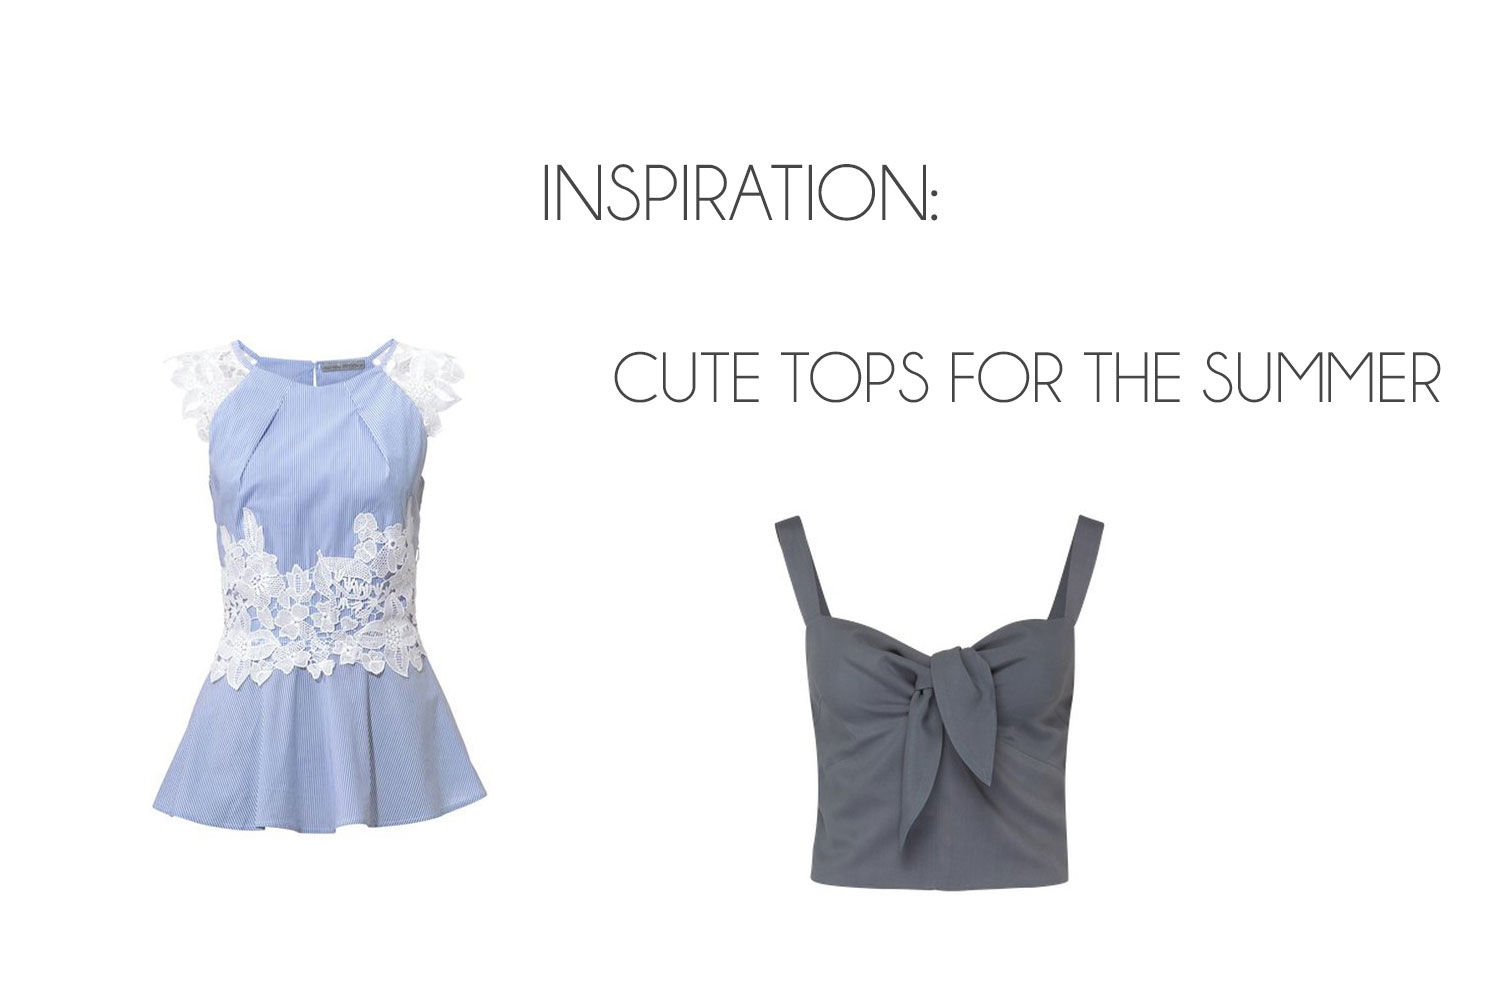 Inspiration: Cute Tops for Warm Summer Days ♥ - Cute tops